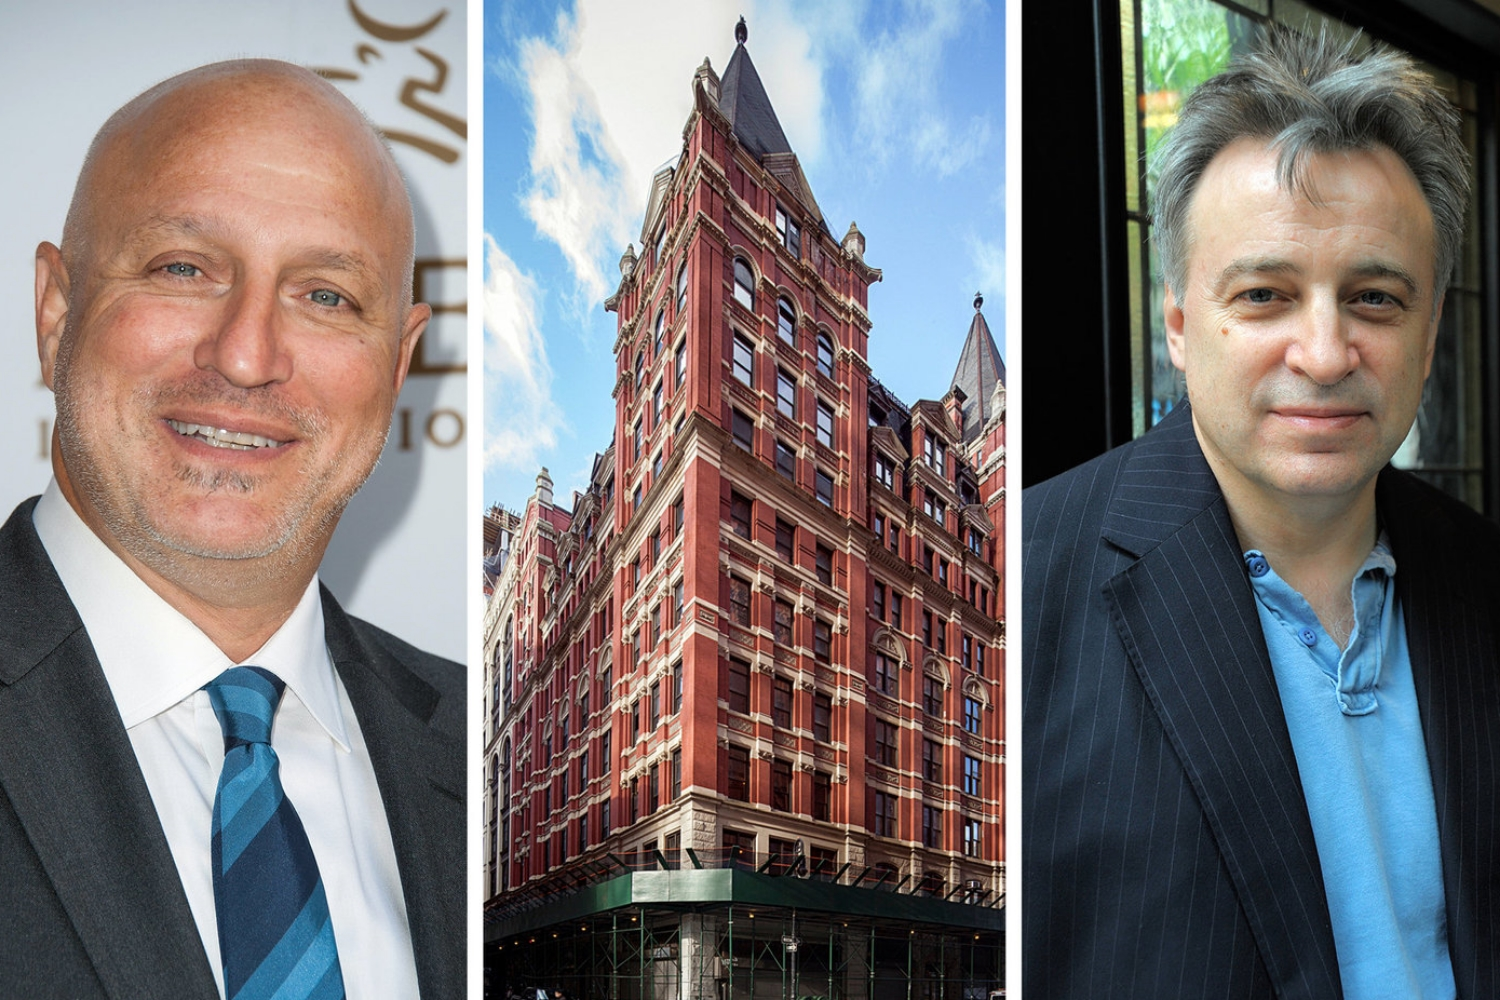 Tom Colicchio (left) and Keith McNally (right) opened restaurants in the restored landmark hotel.